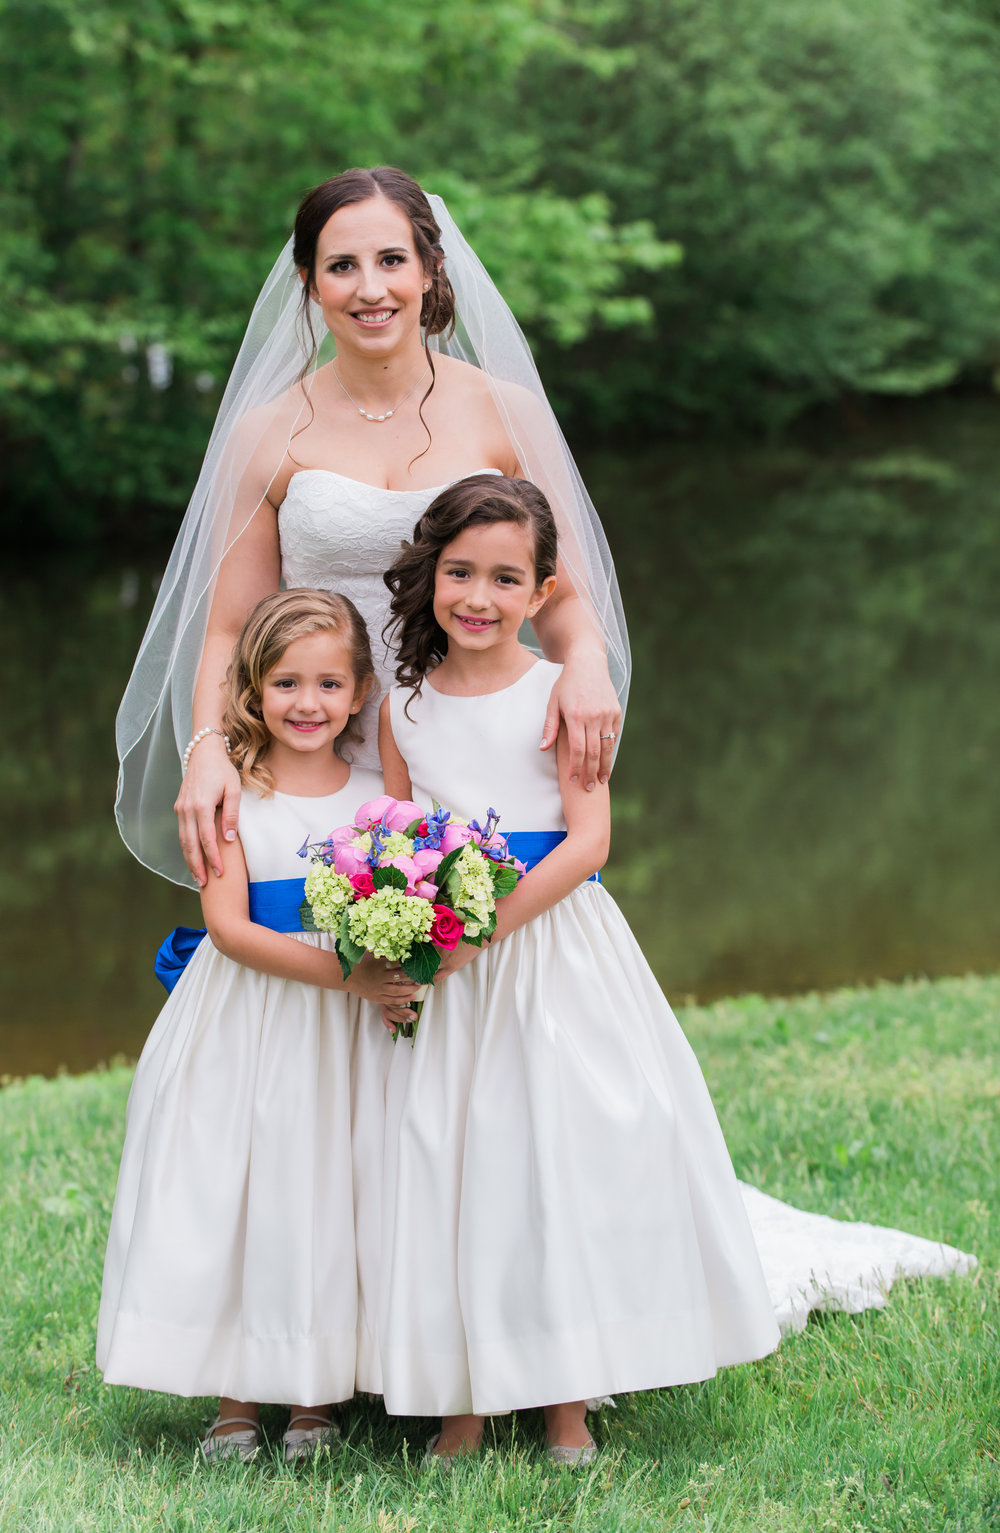 Bride and Flowergirls